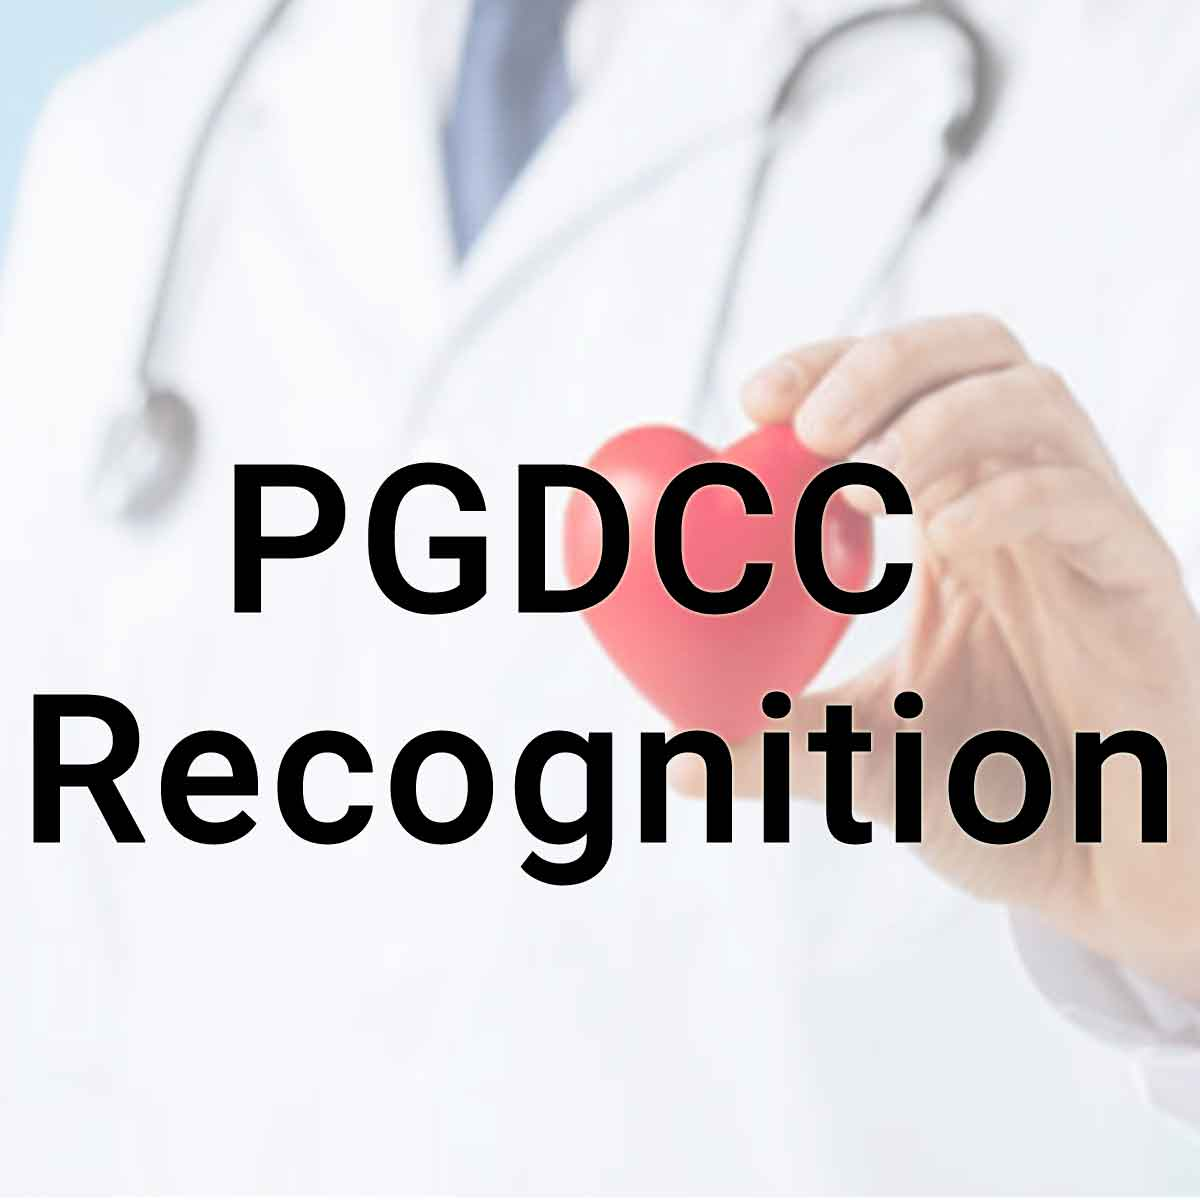 Decide on IGNOU PGDCC recognition urgently: Health Ministry tells MCI Board of Governors